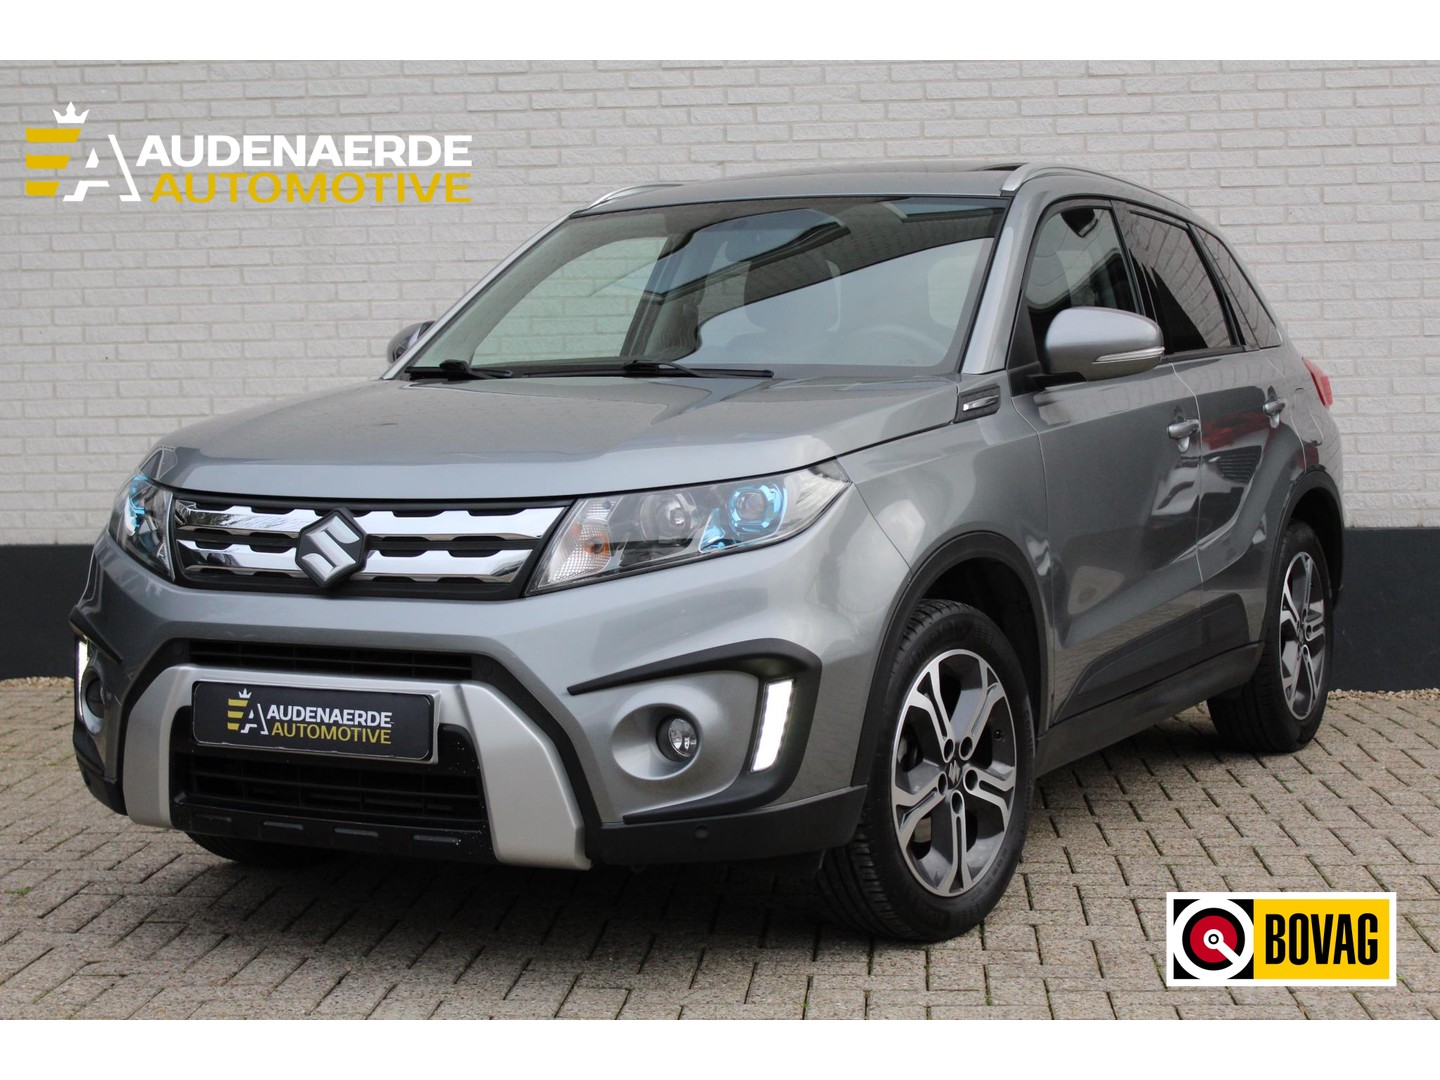 Suzuki Vitara 1.6 high executive panoramadak